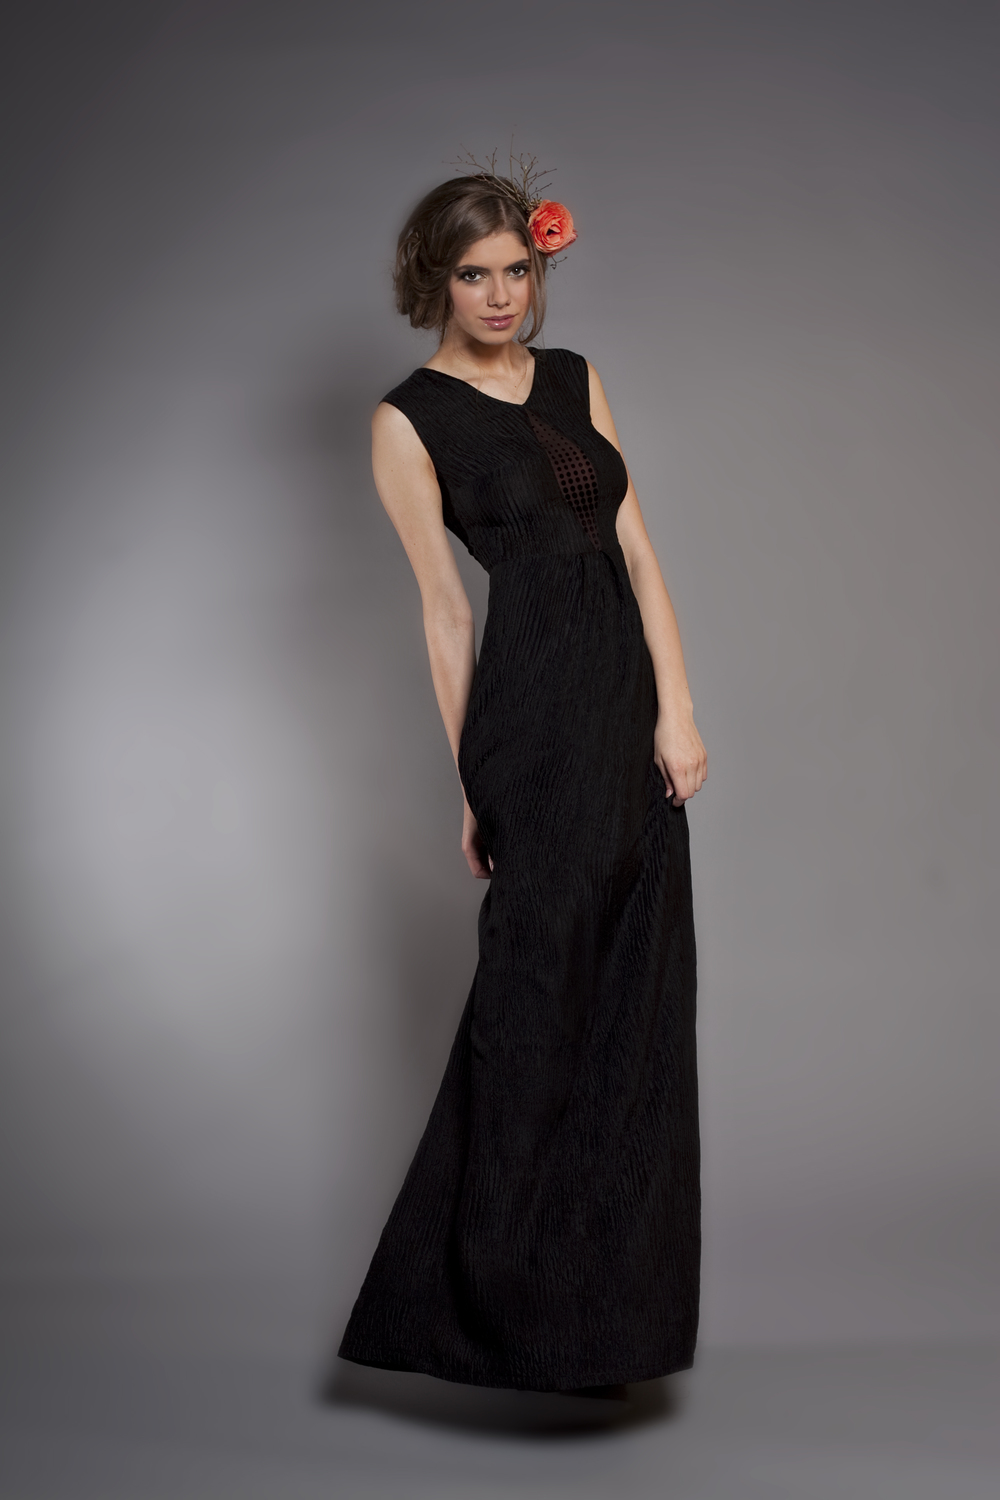 long black dress.jpg